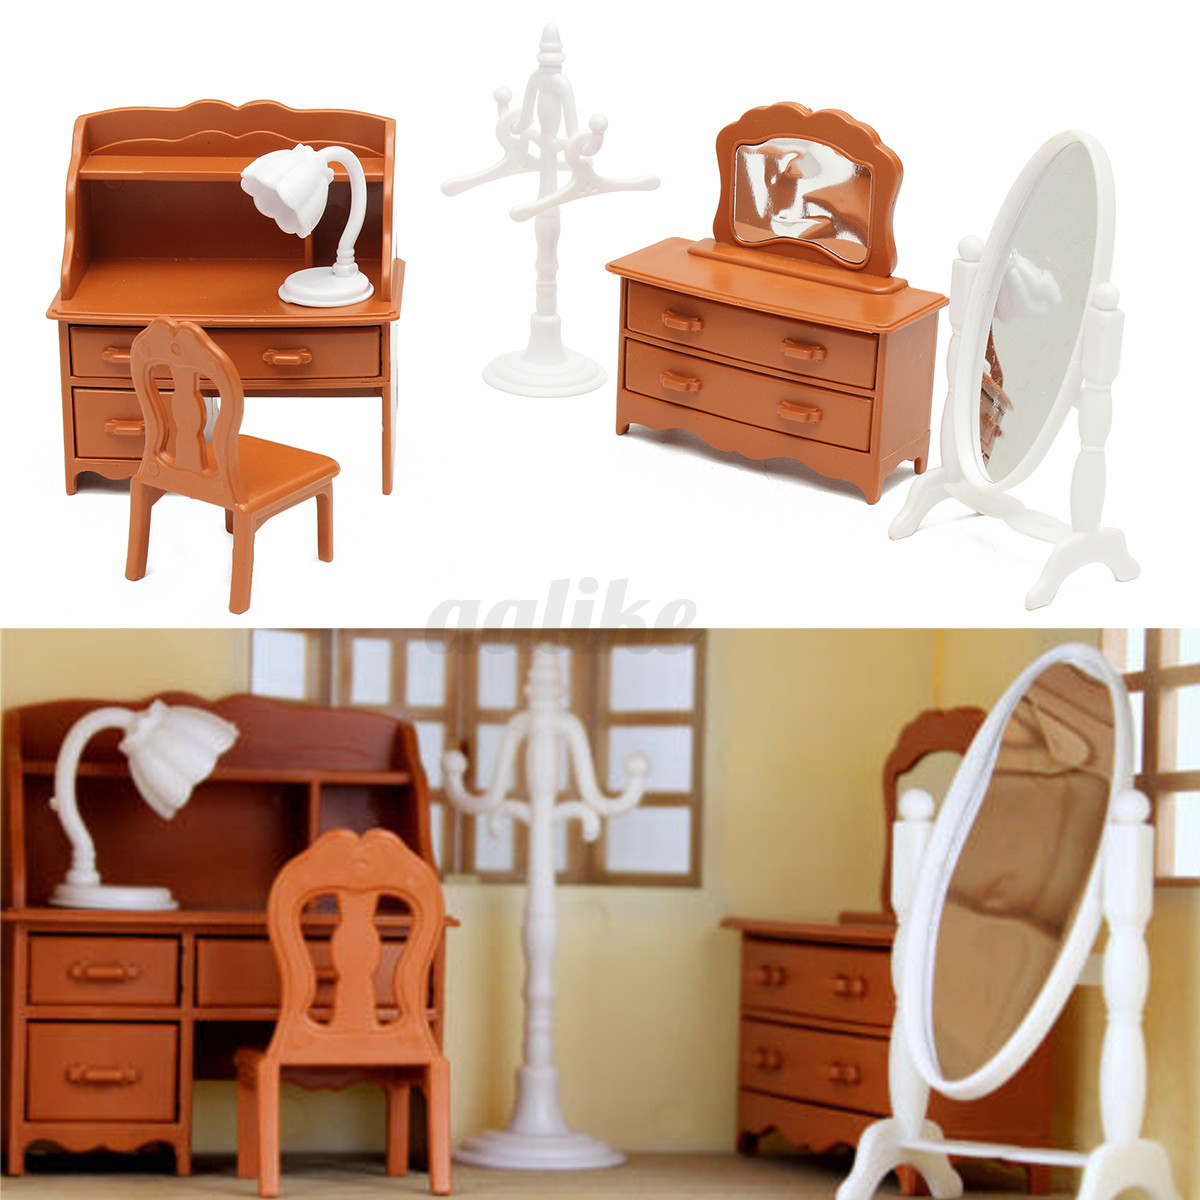 Plastic Table Miniature Doll House Furniture Toy Set Bathroom Kitchen Decoration Ebay